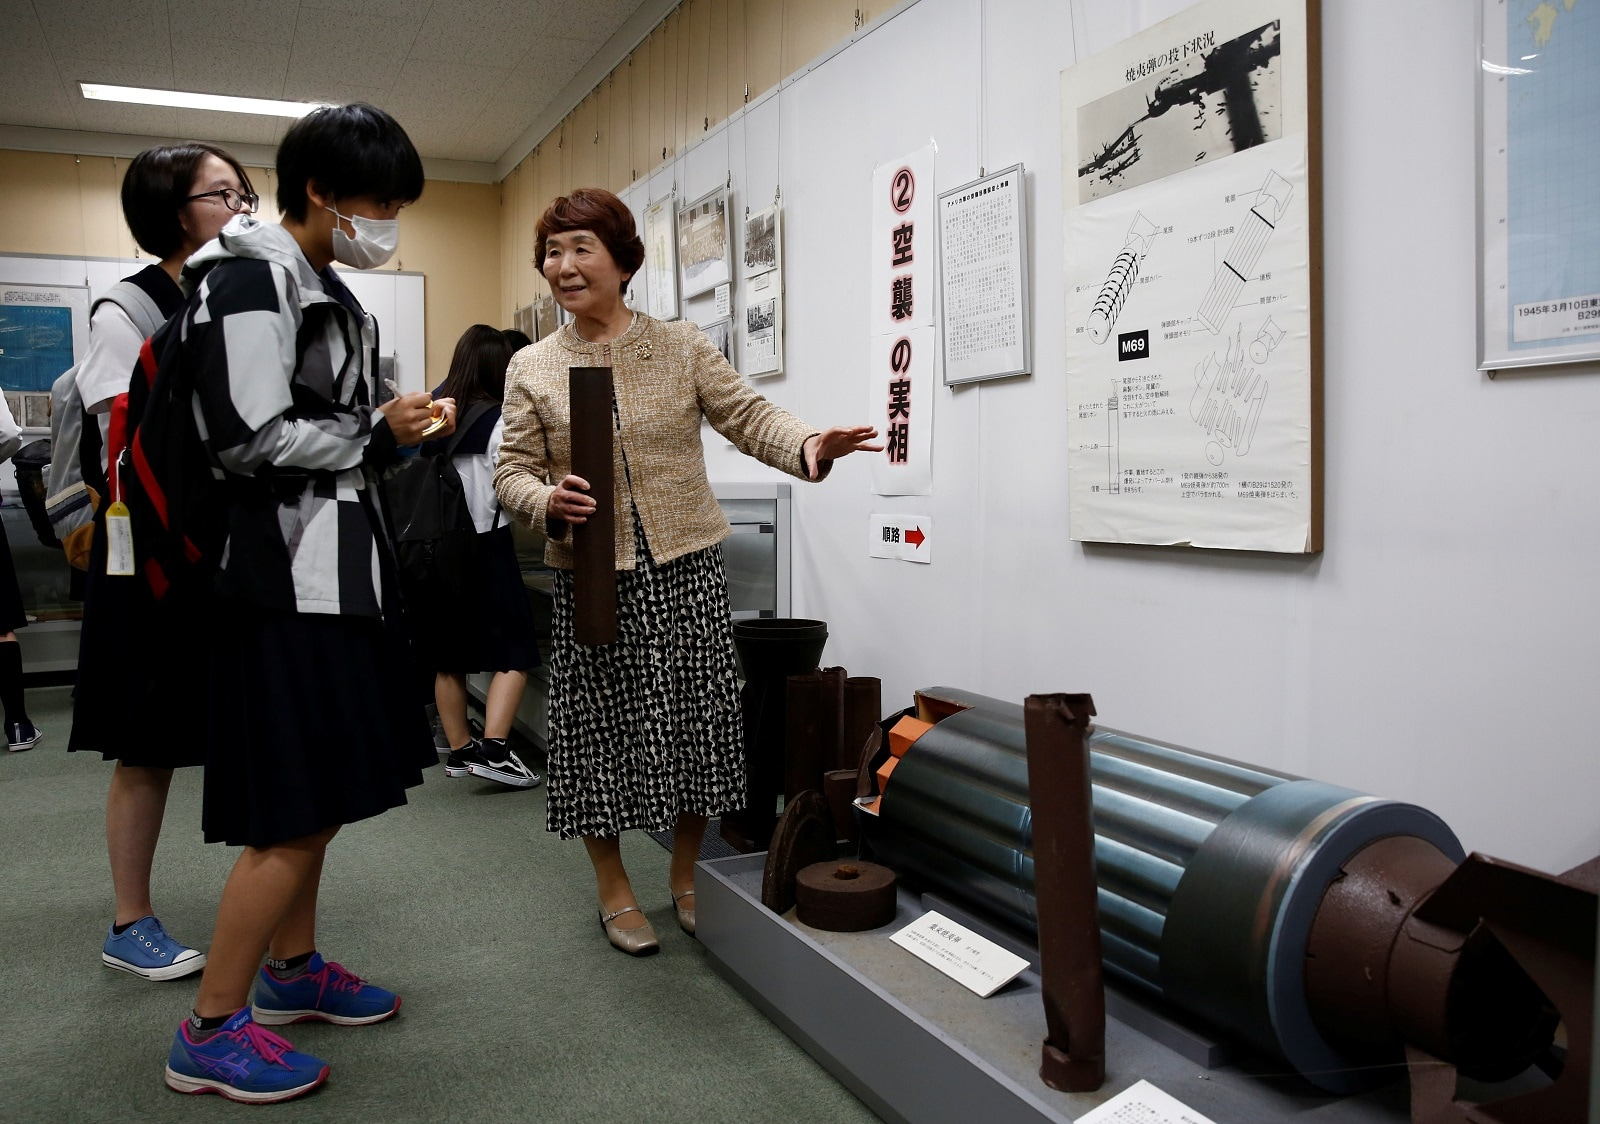 Haruyo Nihei explains to the schoolgirls visiting a museum about the March 10, 1945, US firebombing in Tokyo, Japan April 19, 2019. REUTERS/Kim Kyung-hoon